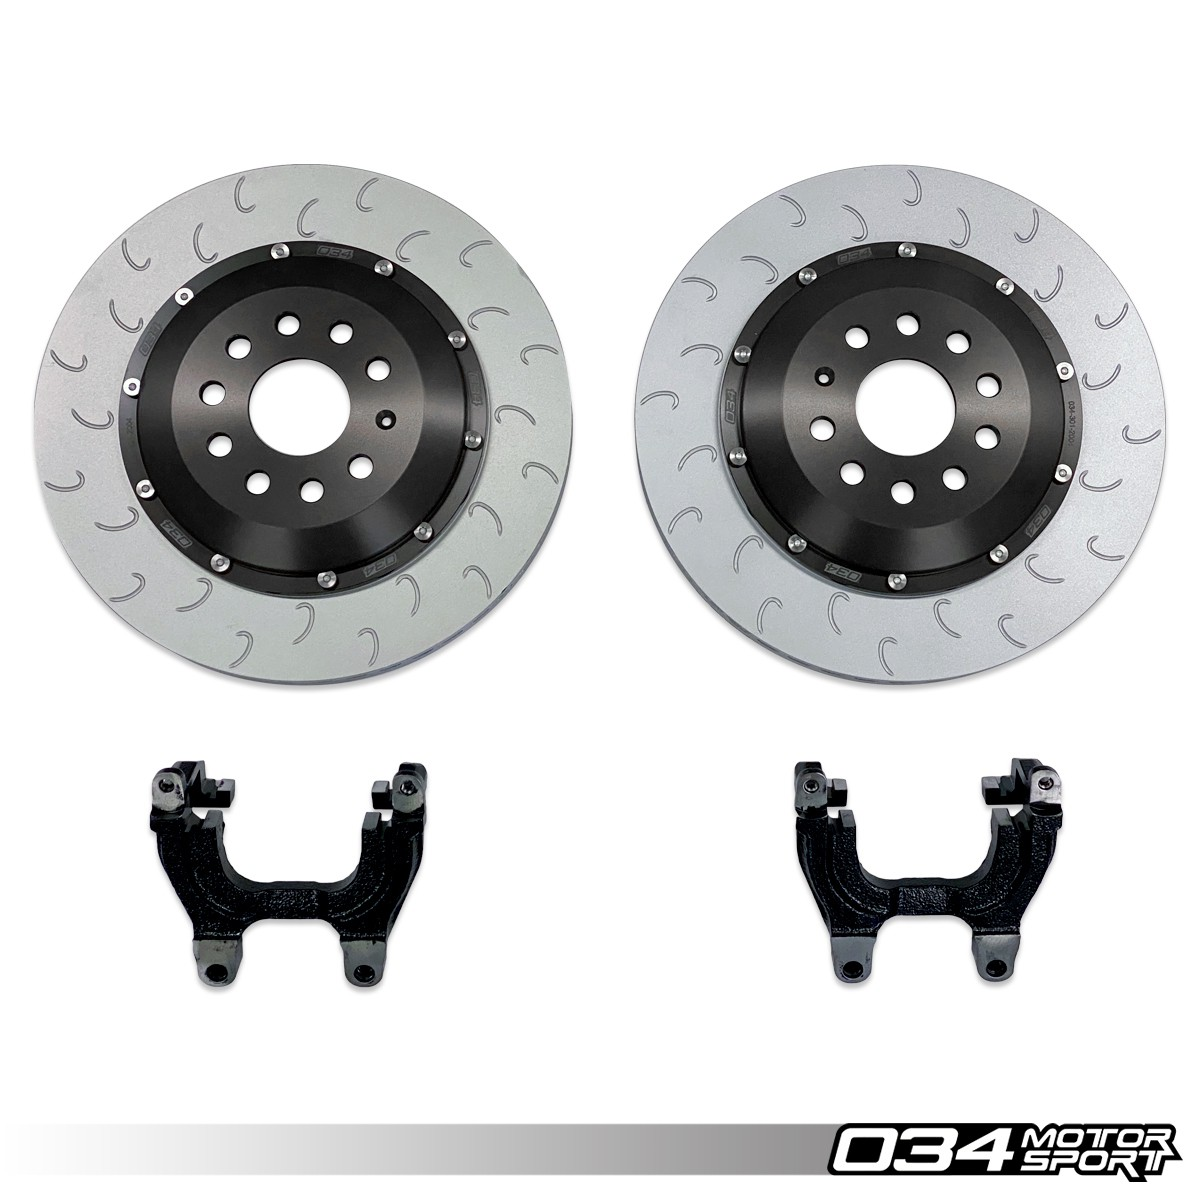 2-Piece Floating Rear Brake Rotor 350mm Upgrade for MQB VW & Audi 034-301-2004